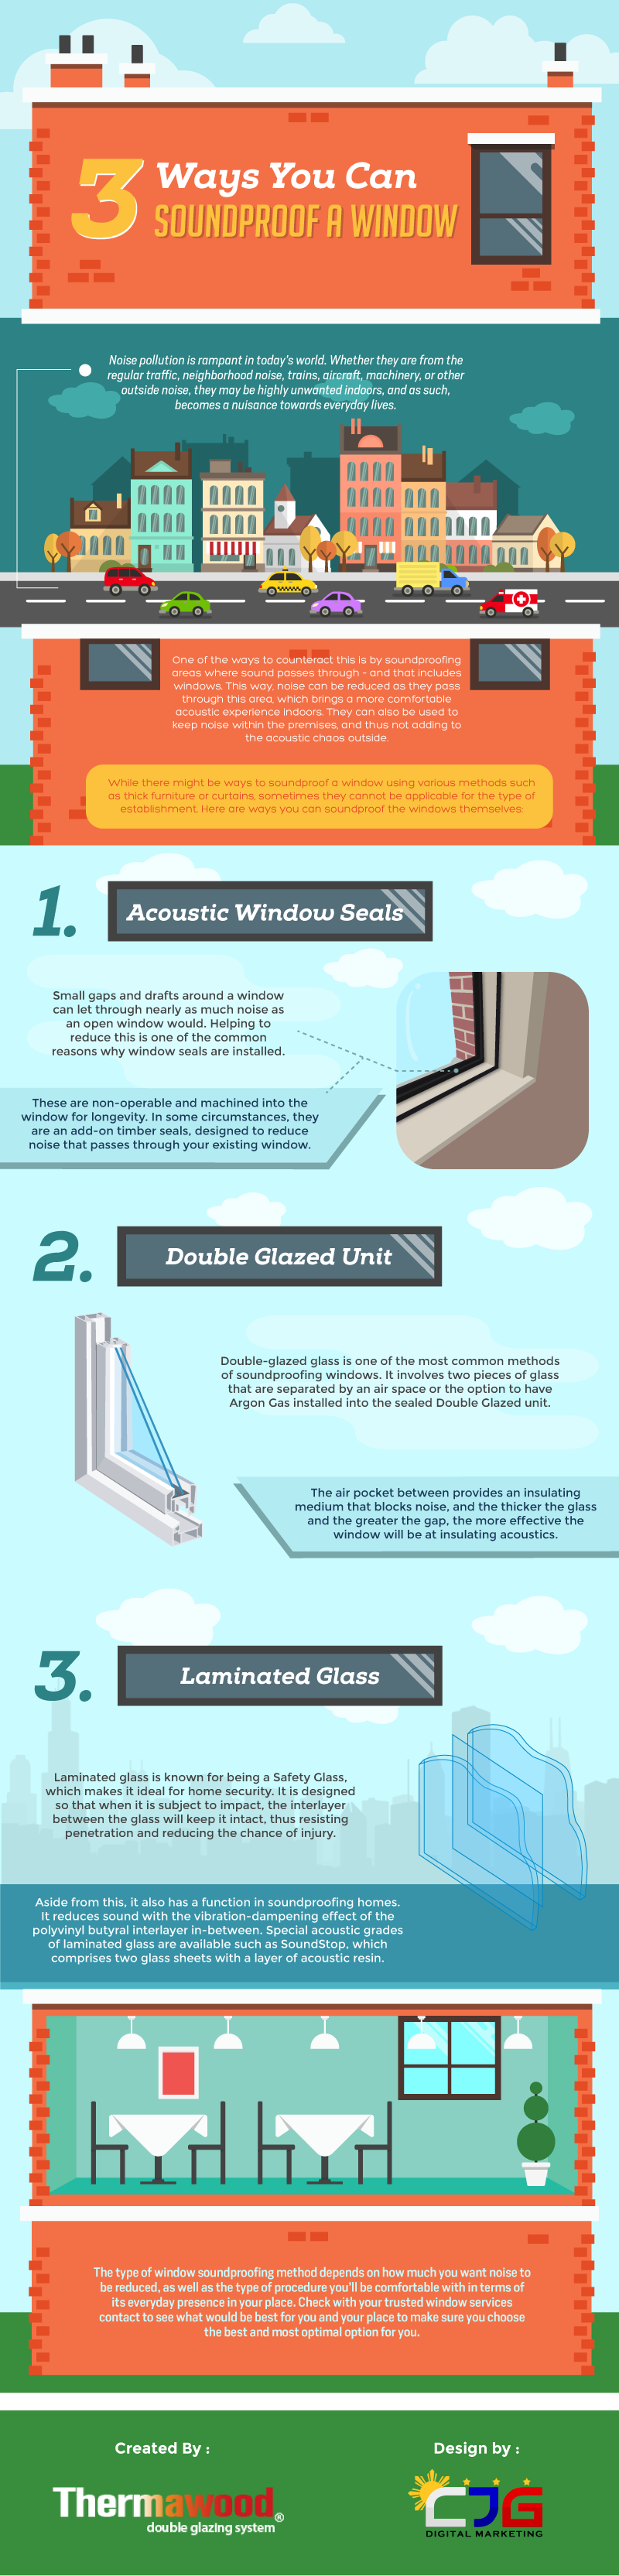 3 Ways You Can Soundproof a Window